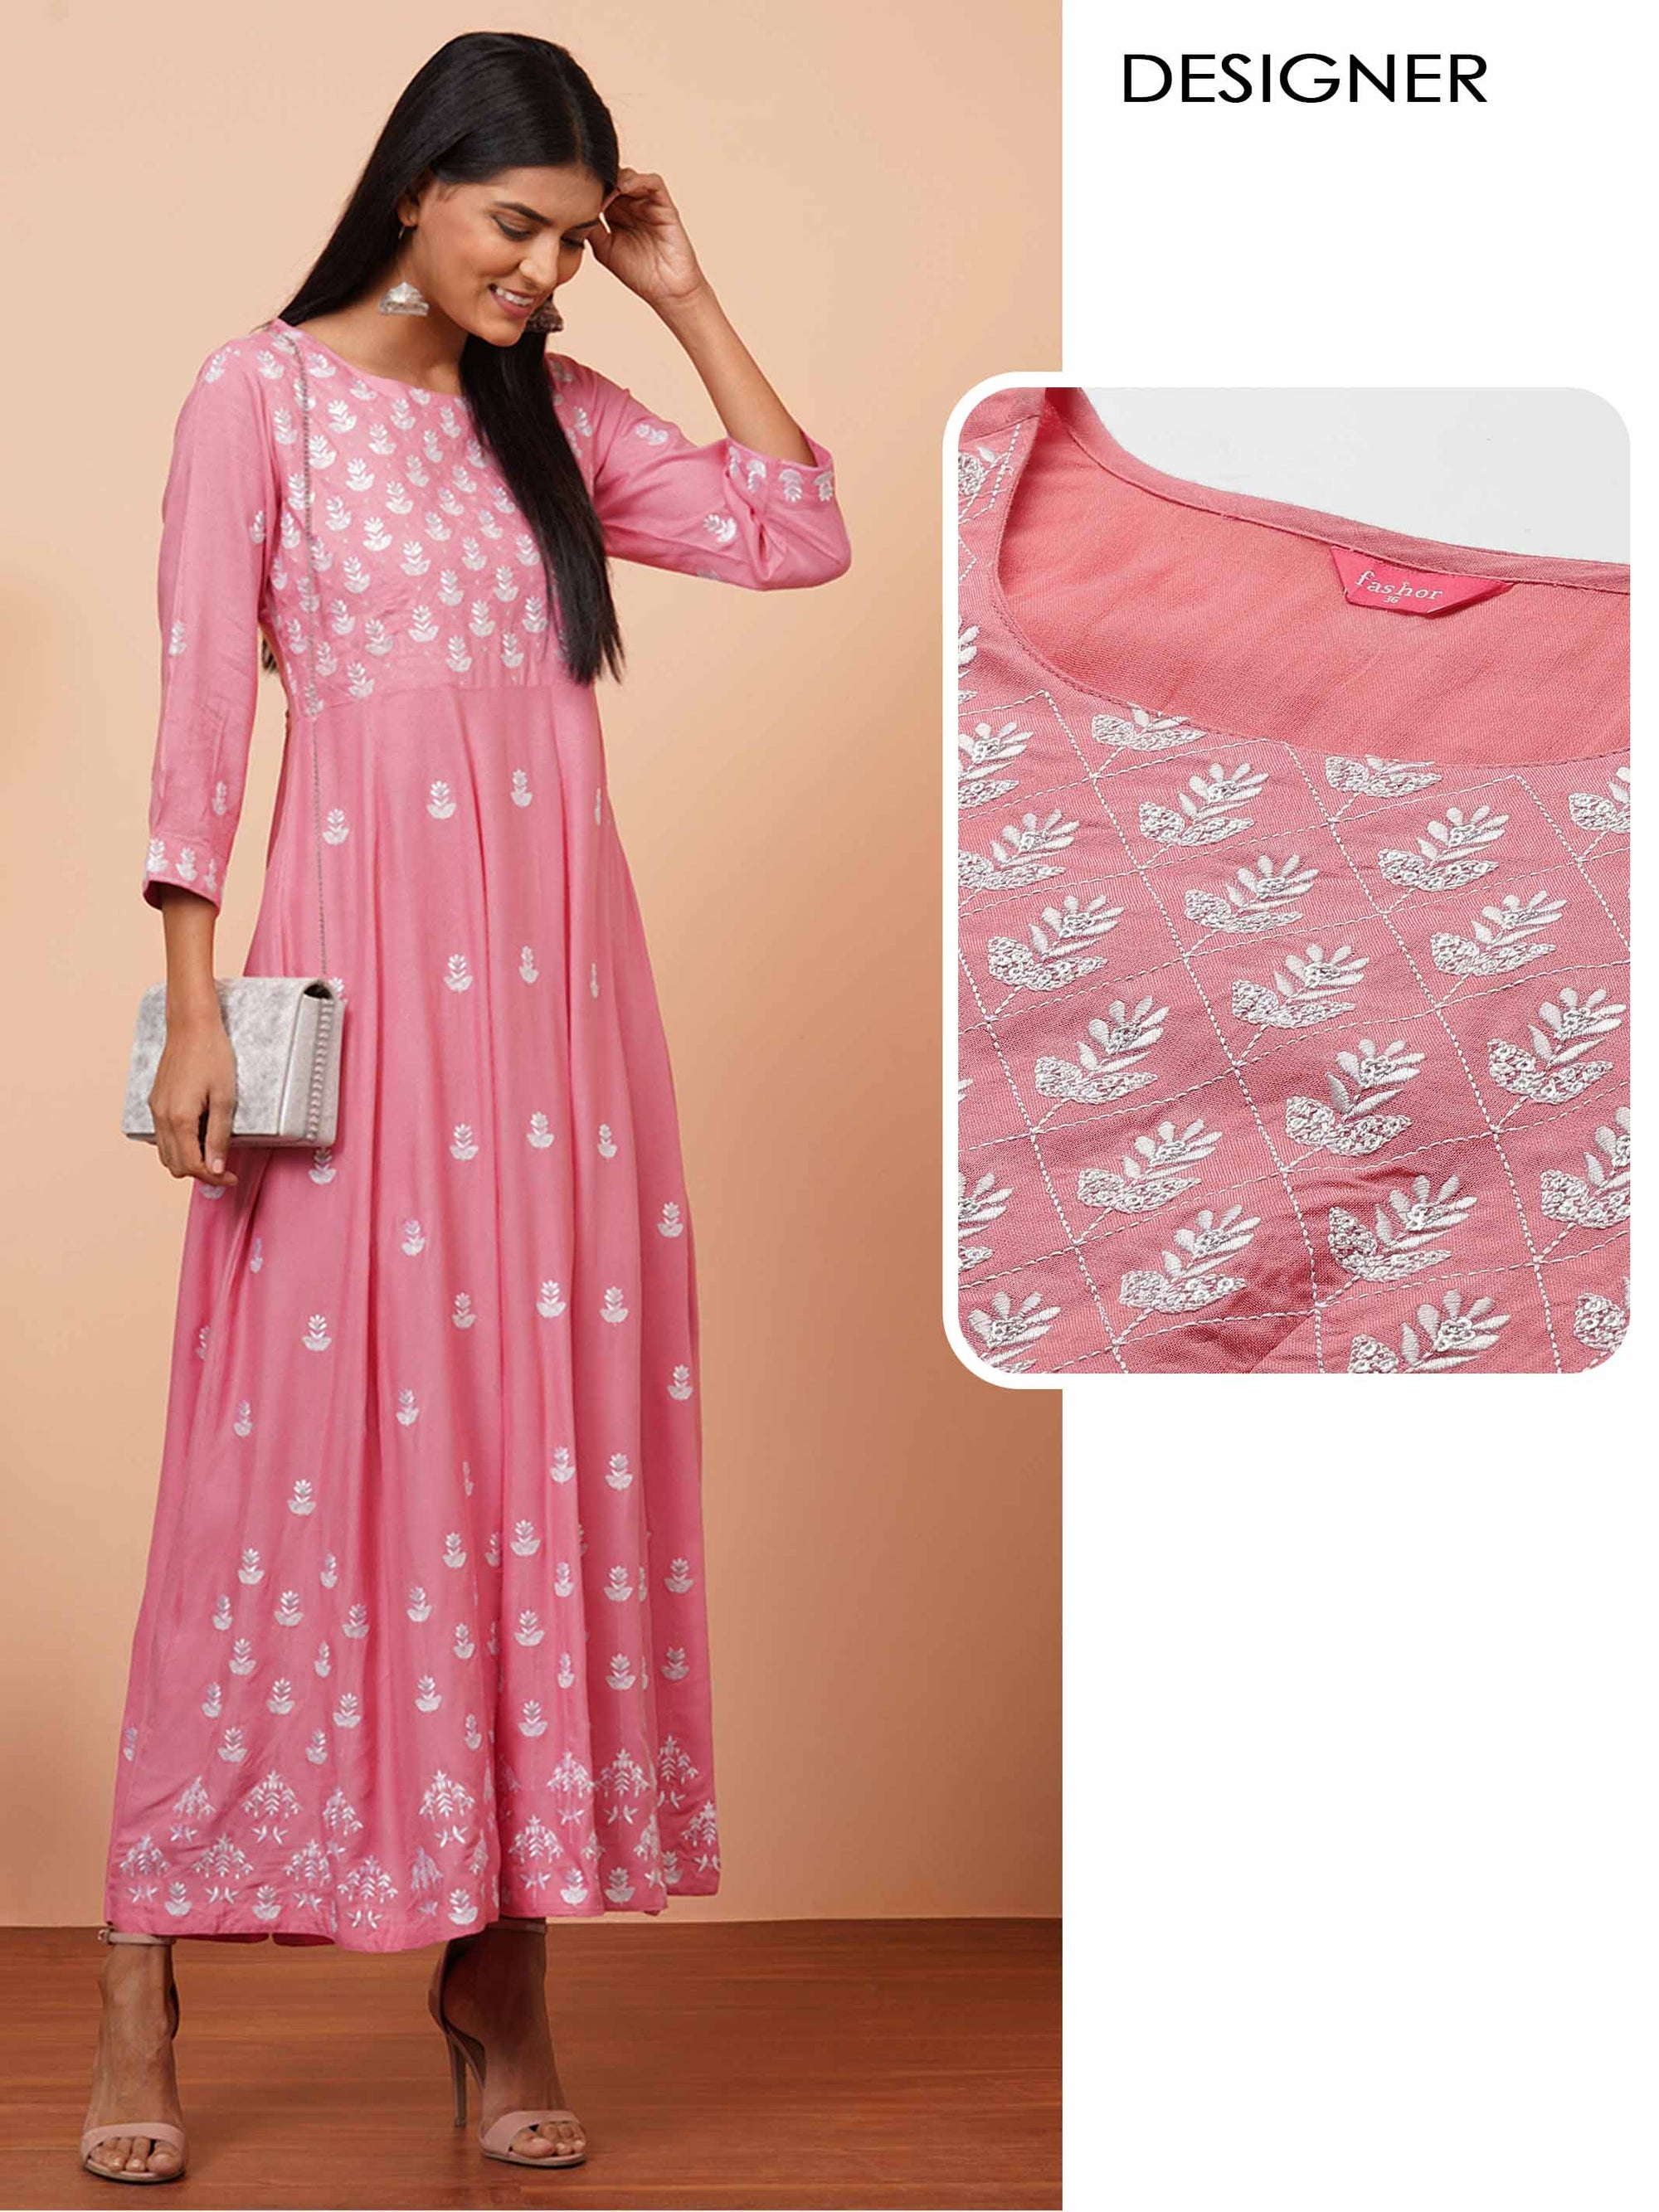 Floral Embroidered Maxi Dress - Pink